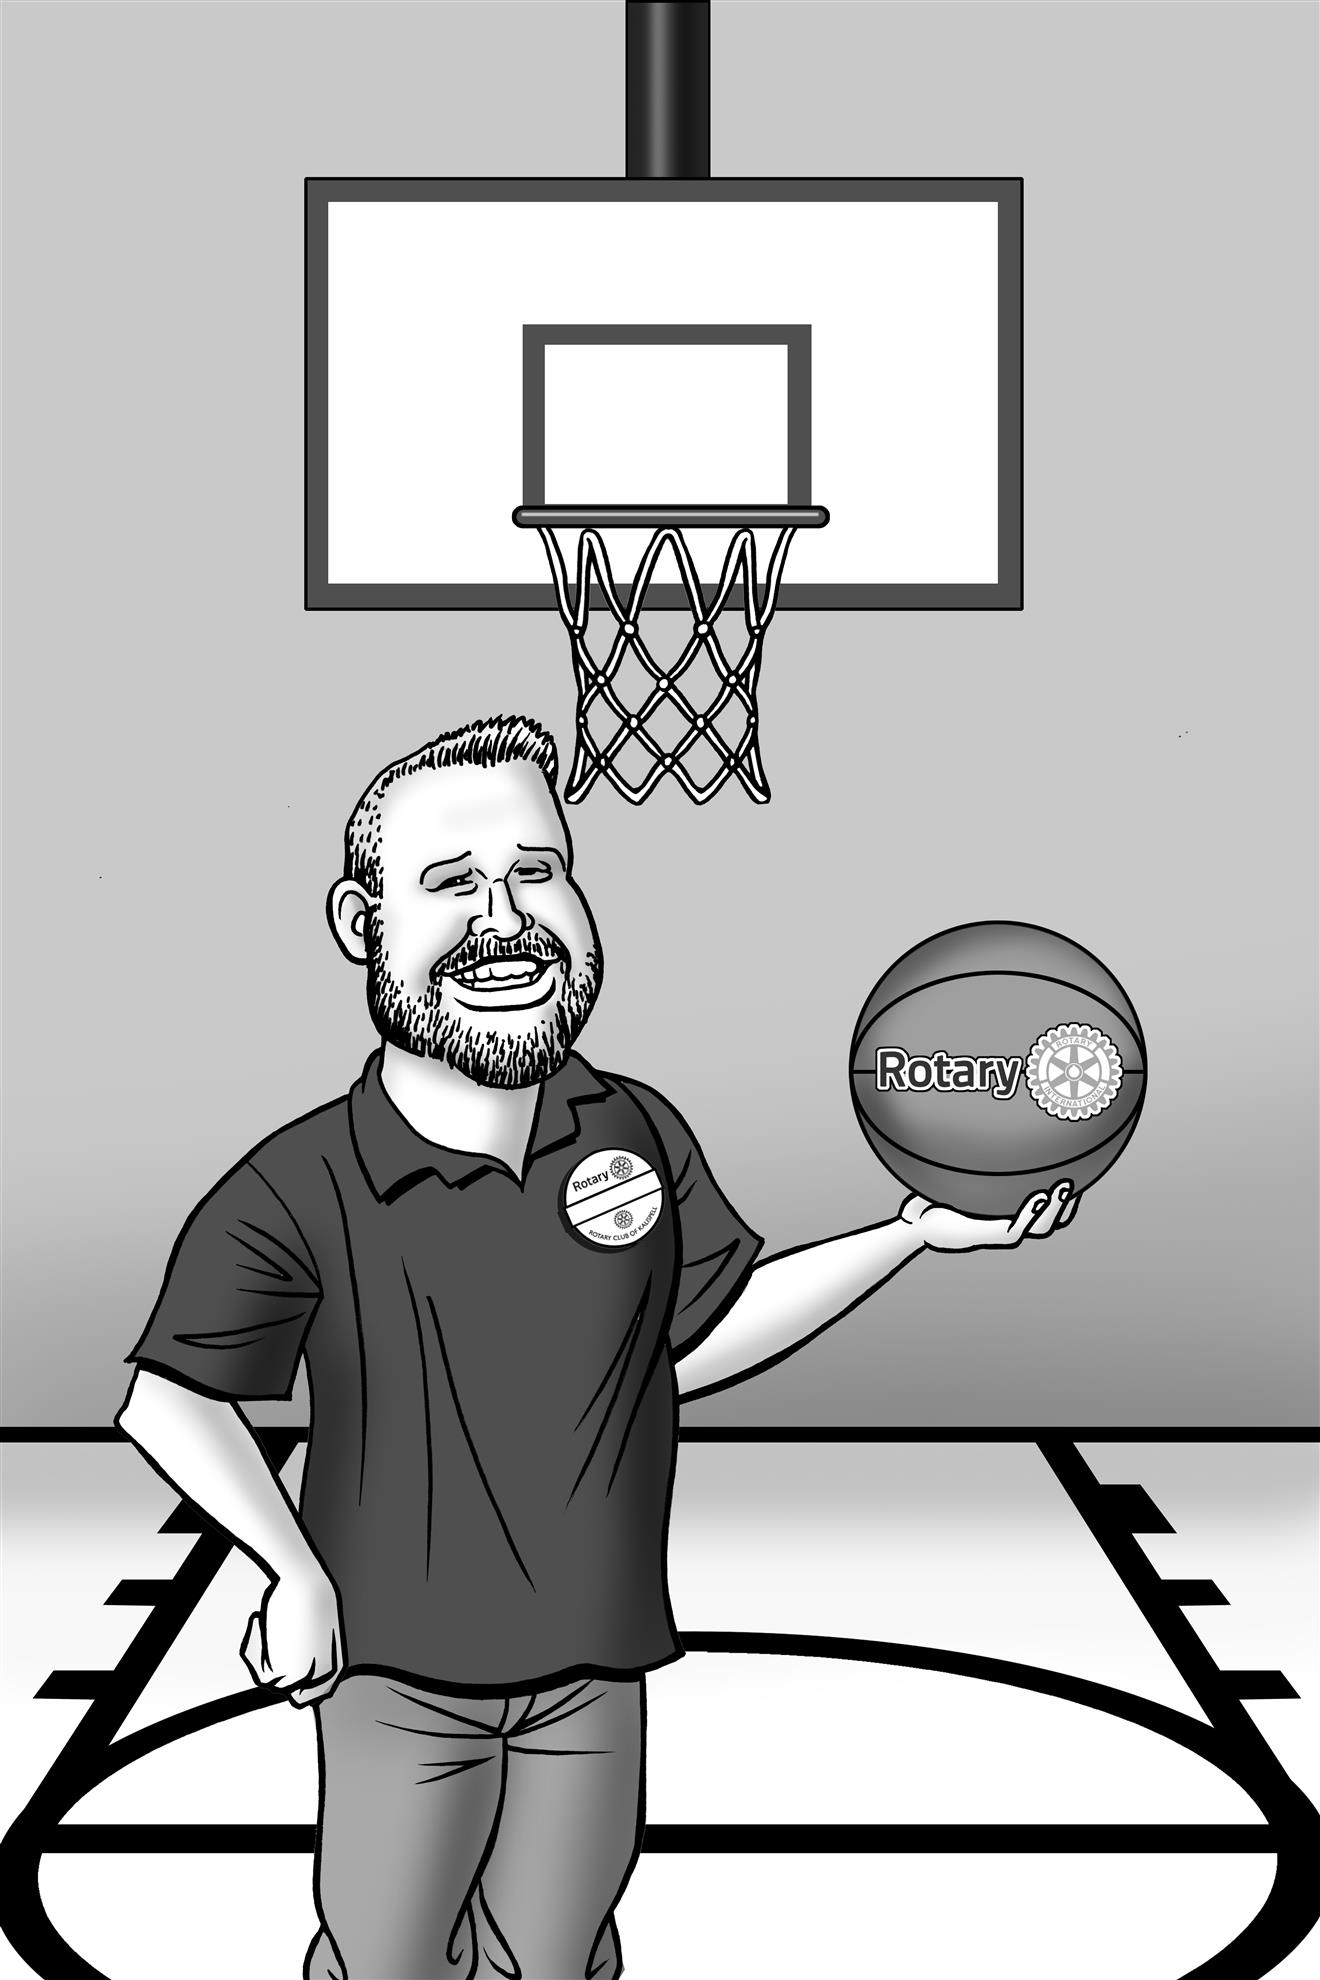 Scott-with-Basketball-Final---copy.jpg